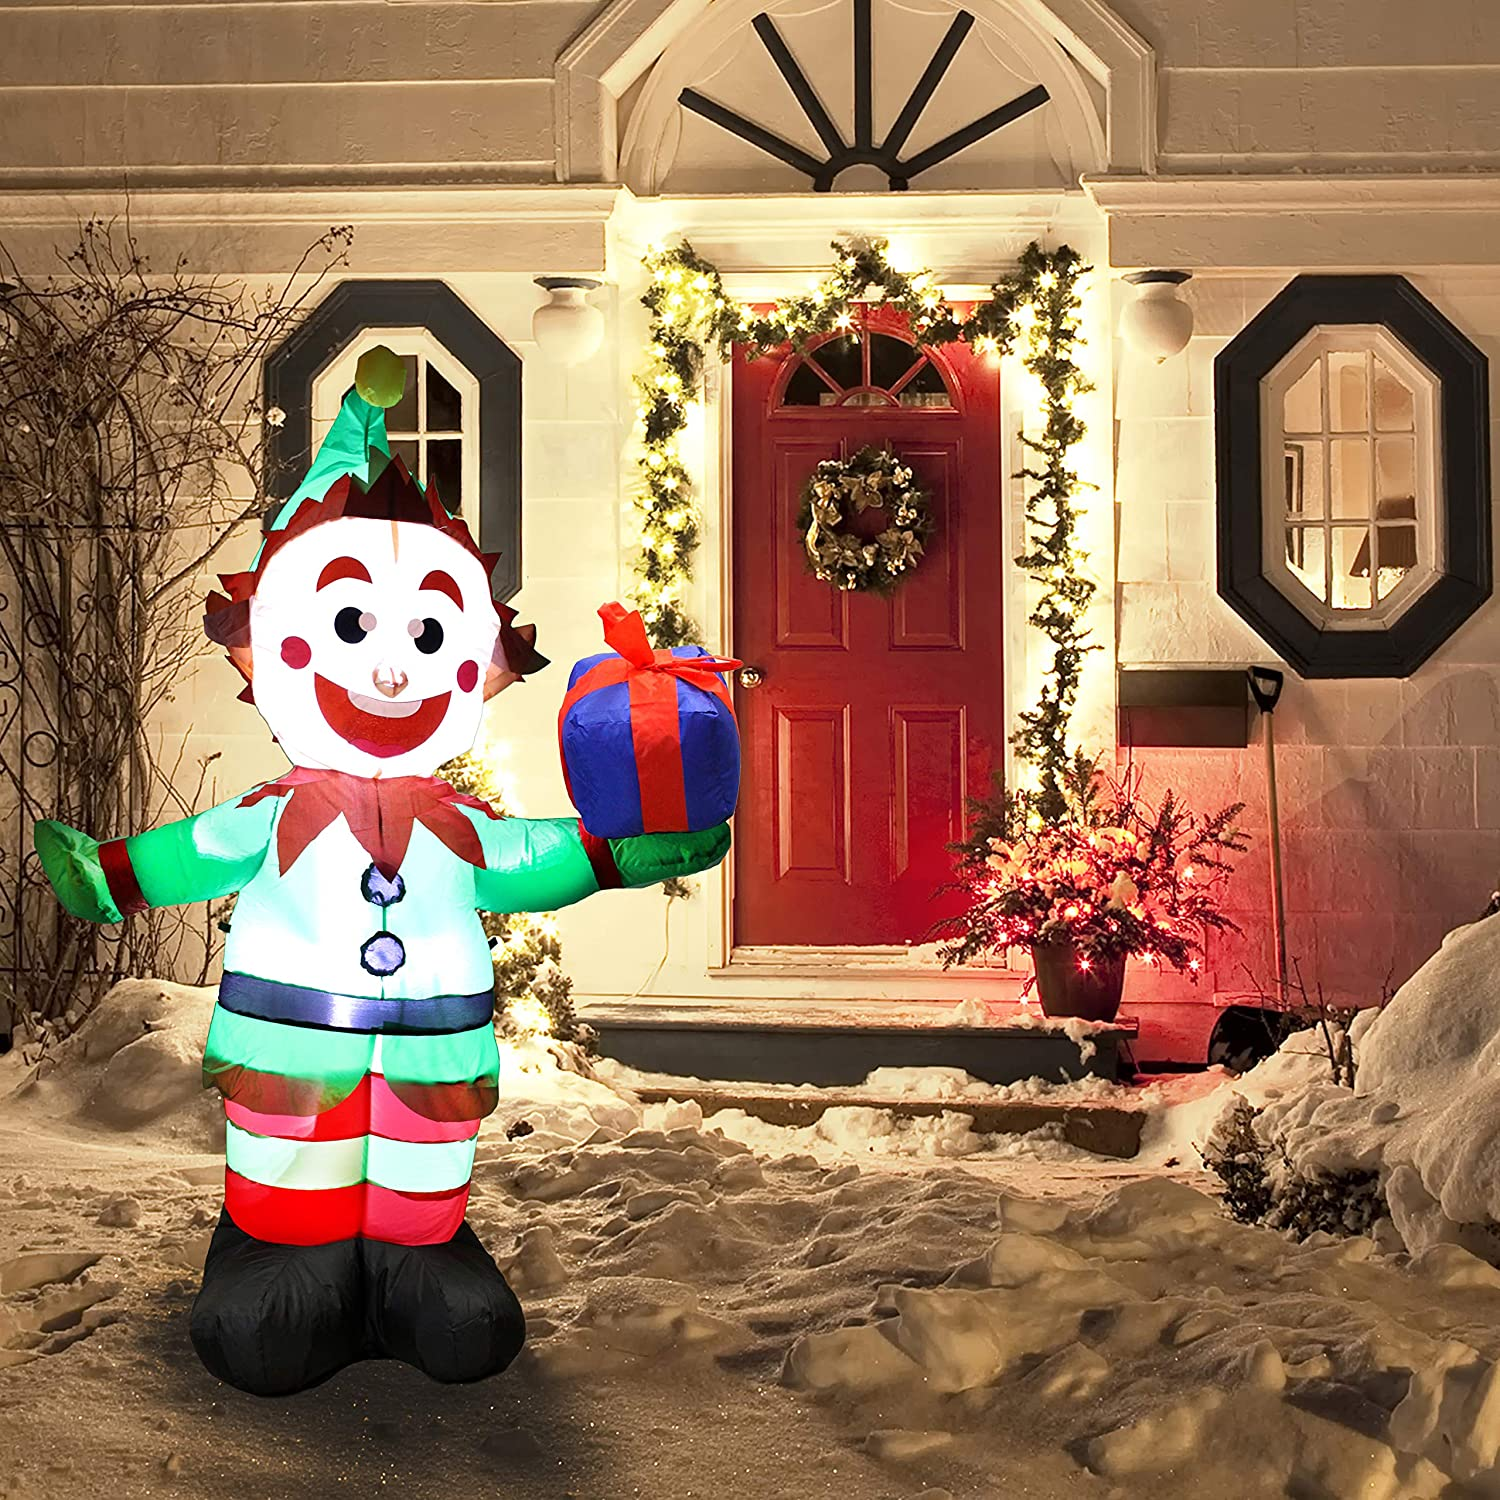 Amazon Joiedomi 5 Foot Elf with Present Inflatable LED Light Up